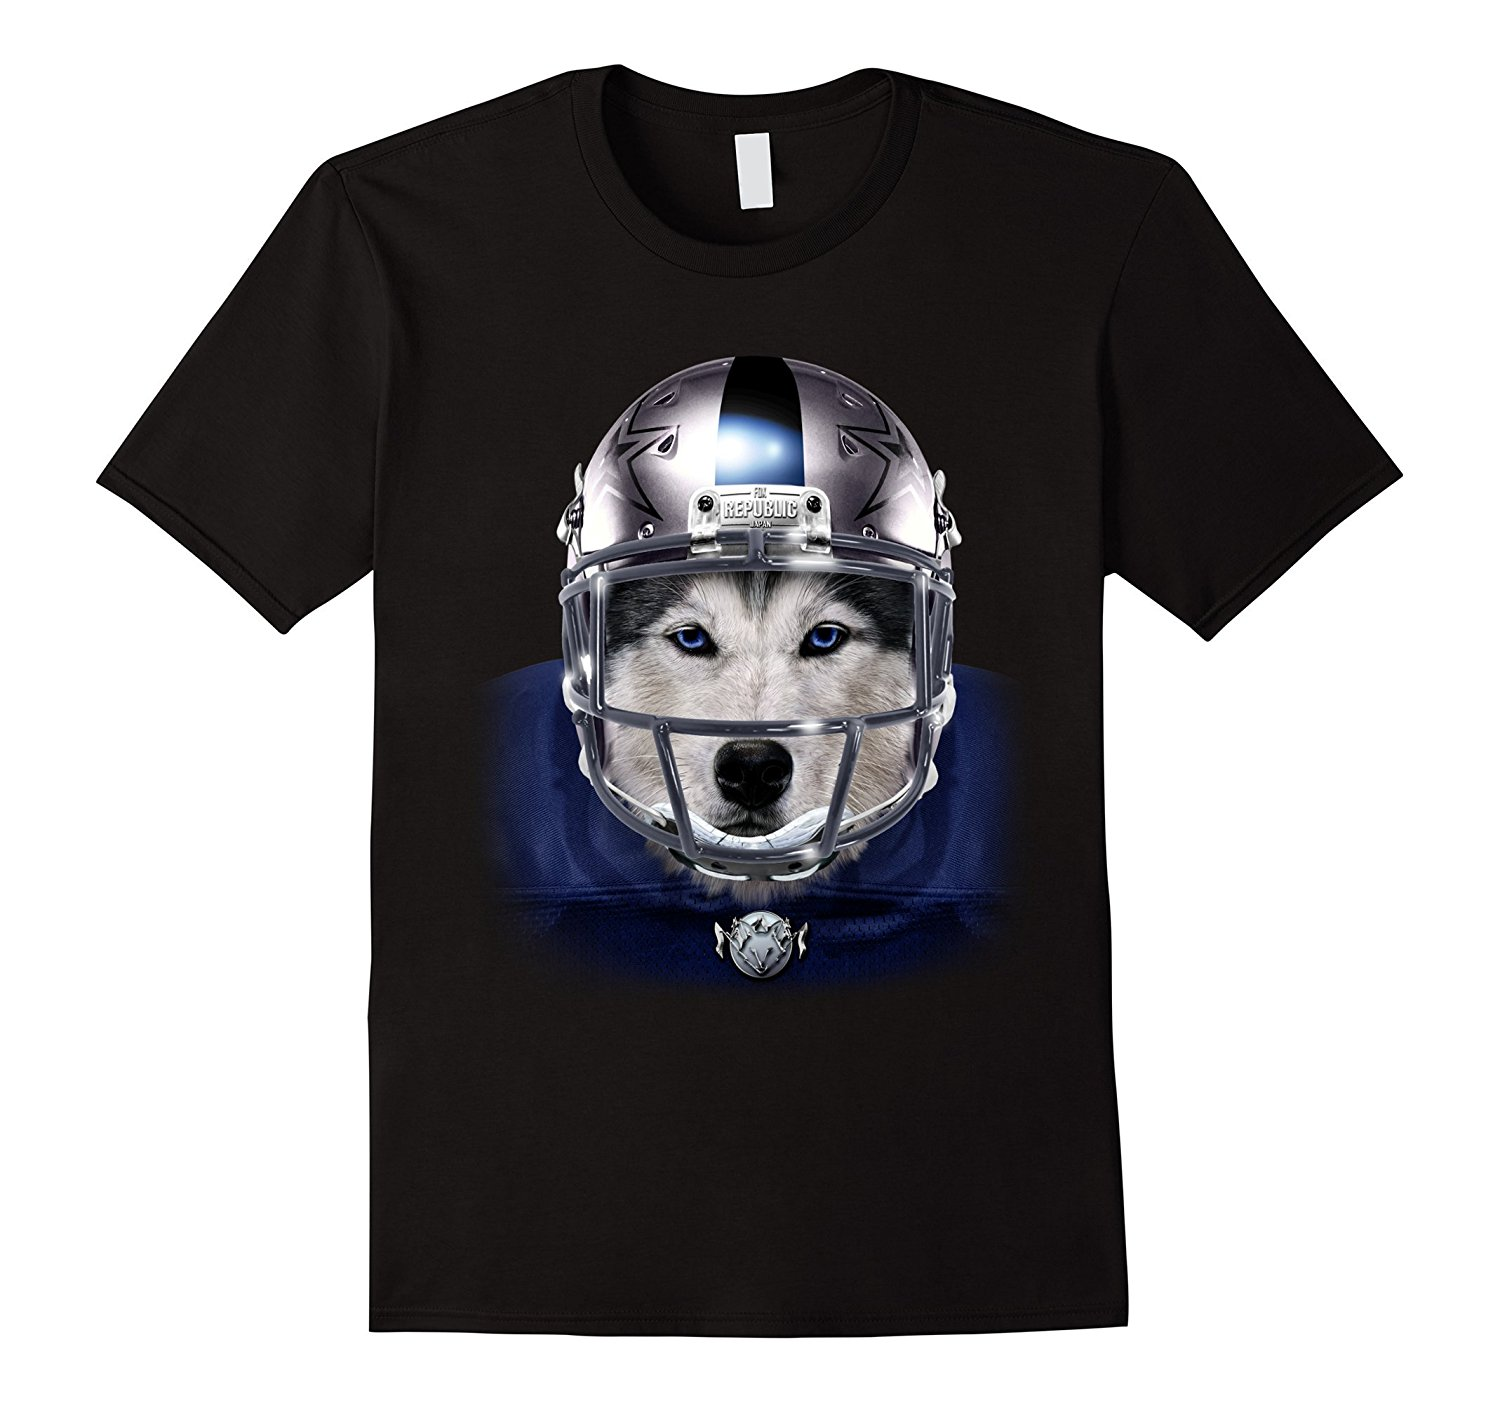 2018 Hot Sale 100% cotton Siberian Husky American Footballs Silver Helmet Dog T-Shirt Tee shirt